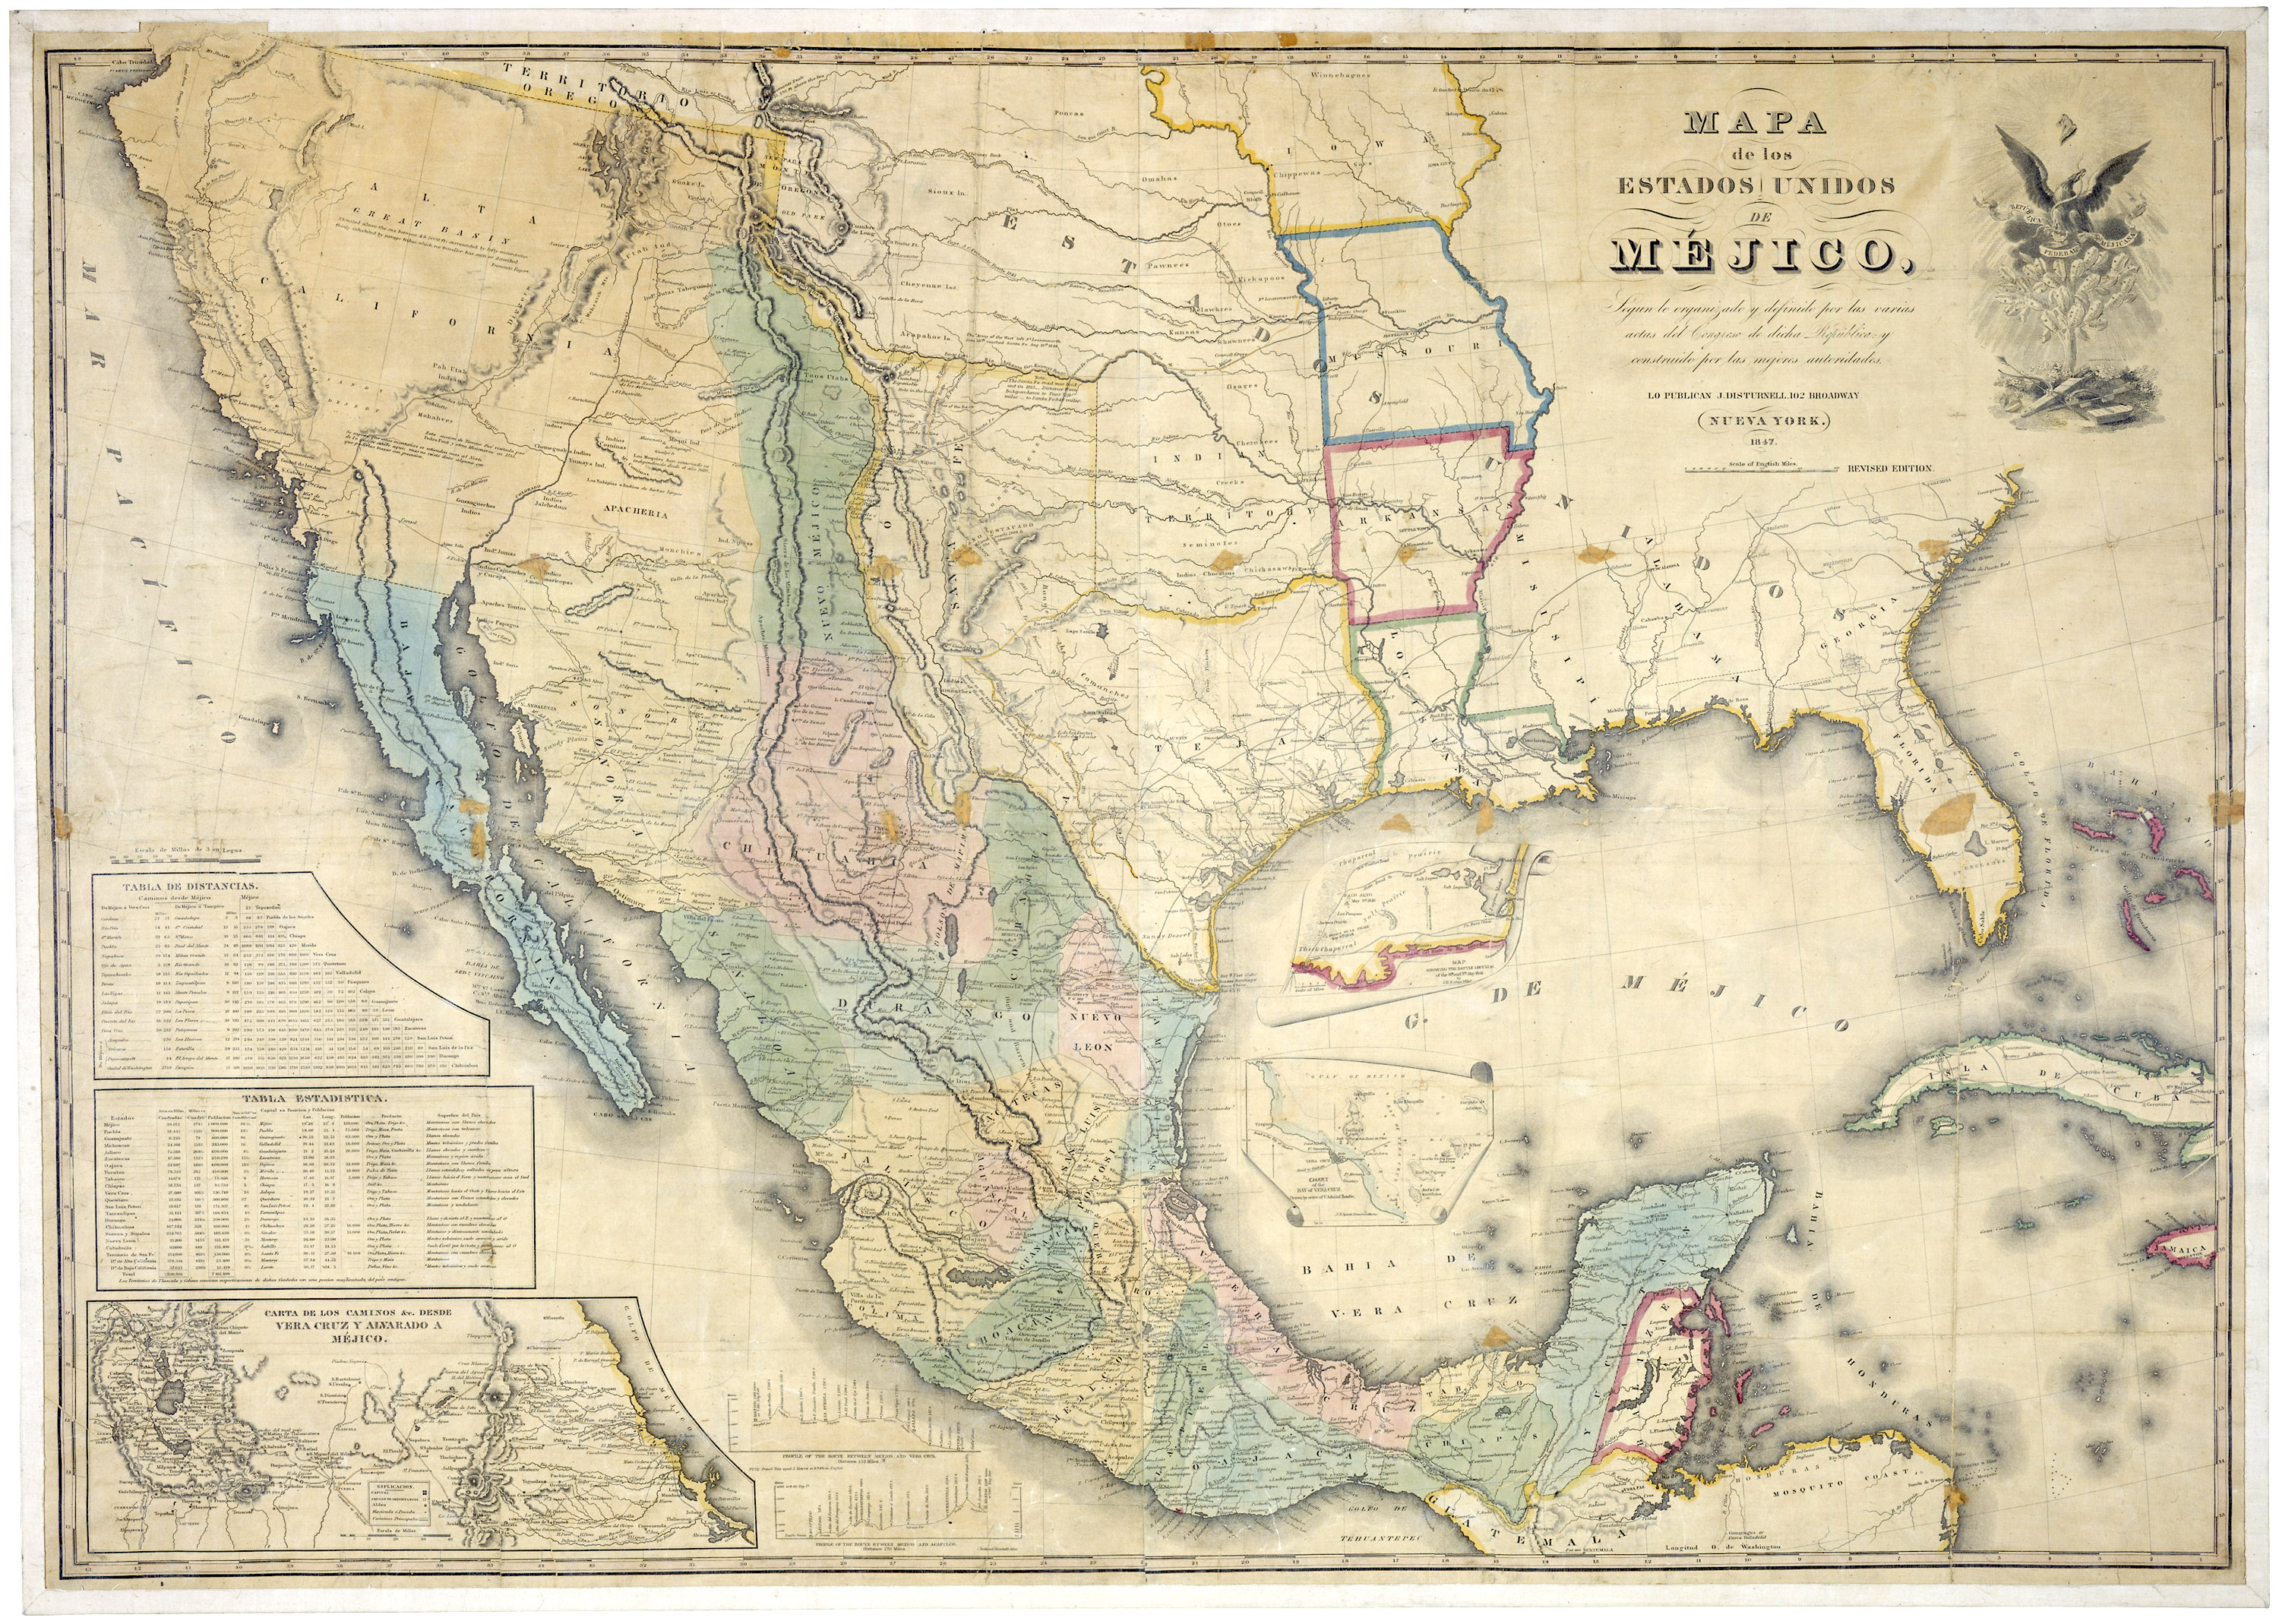 FileMap Of Mexico Jpg Wikimedia Commons - Wikimedia commons us maps most popular